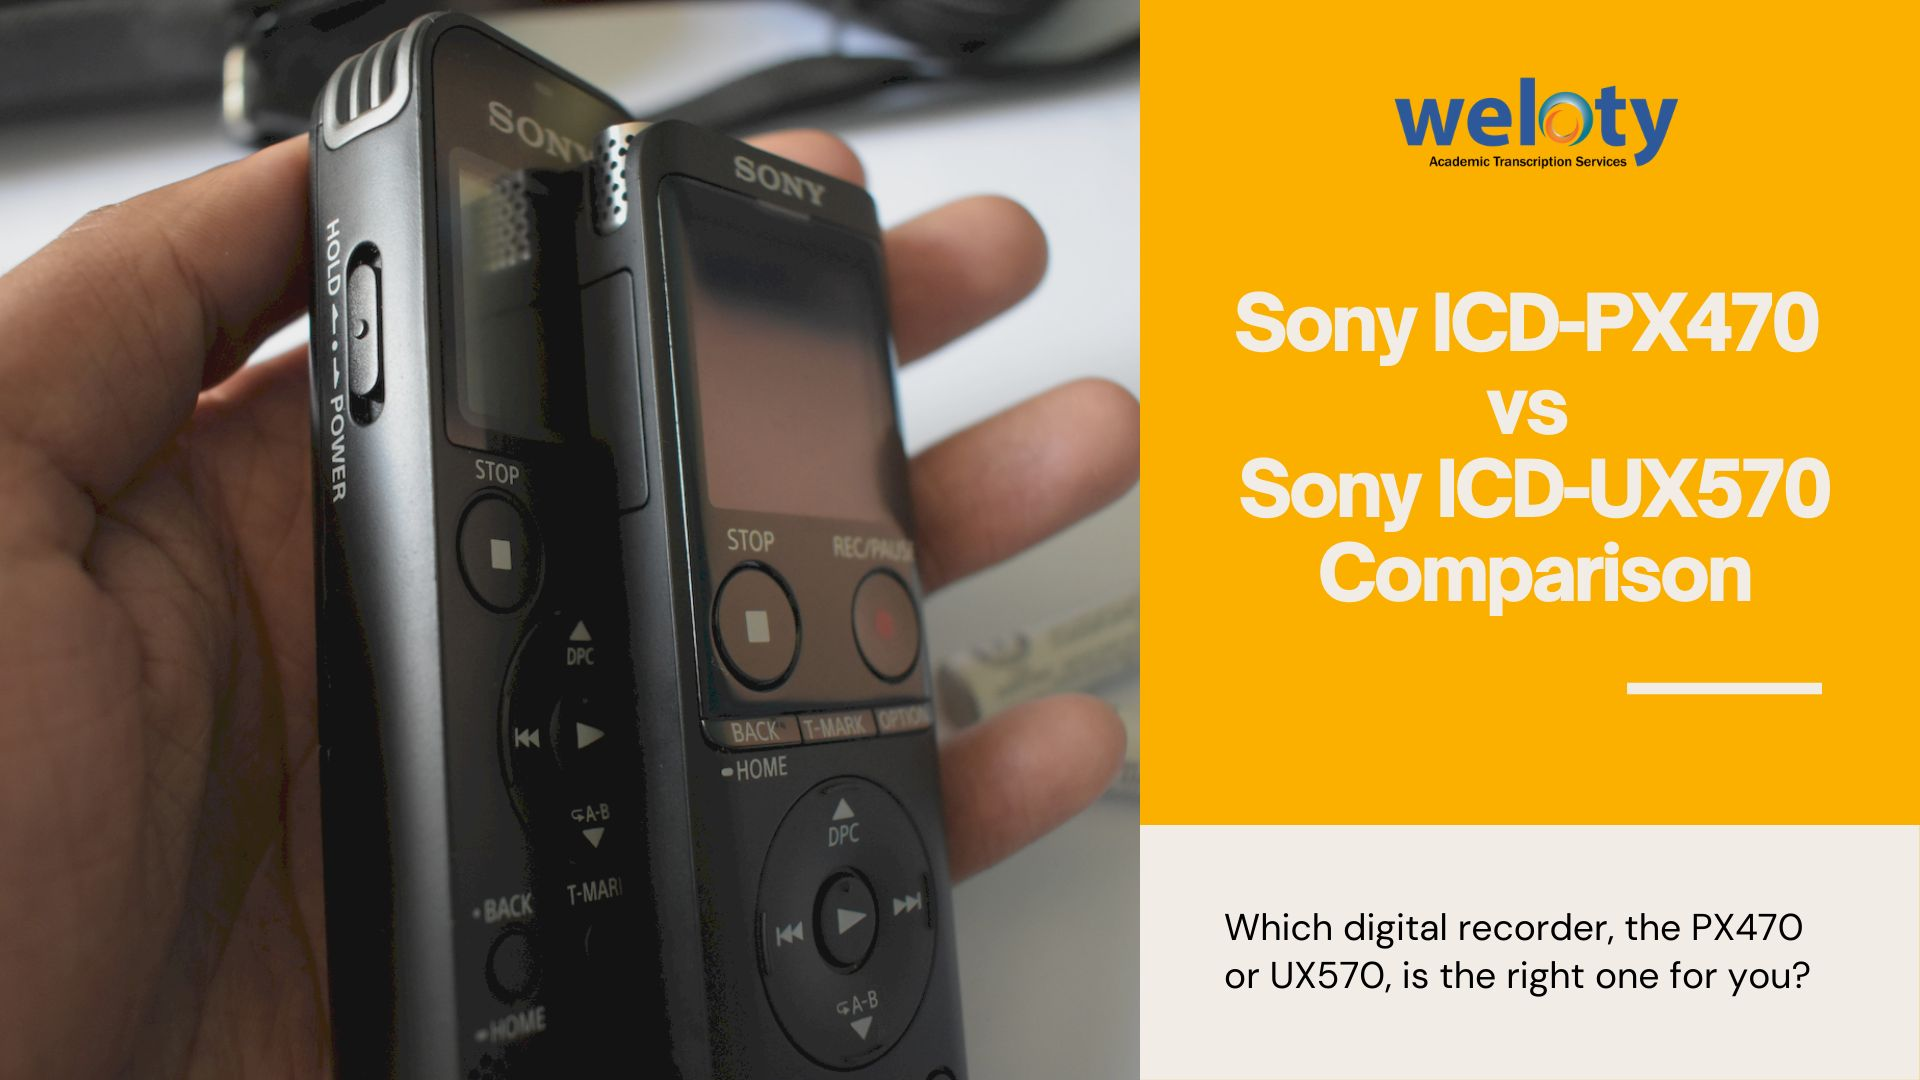 Sony ICD-PX470 vs Sony ICD-UX570 Comparison